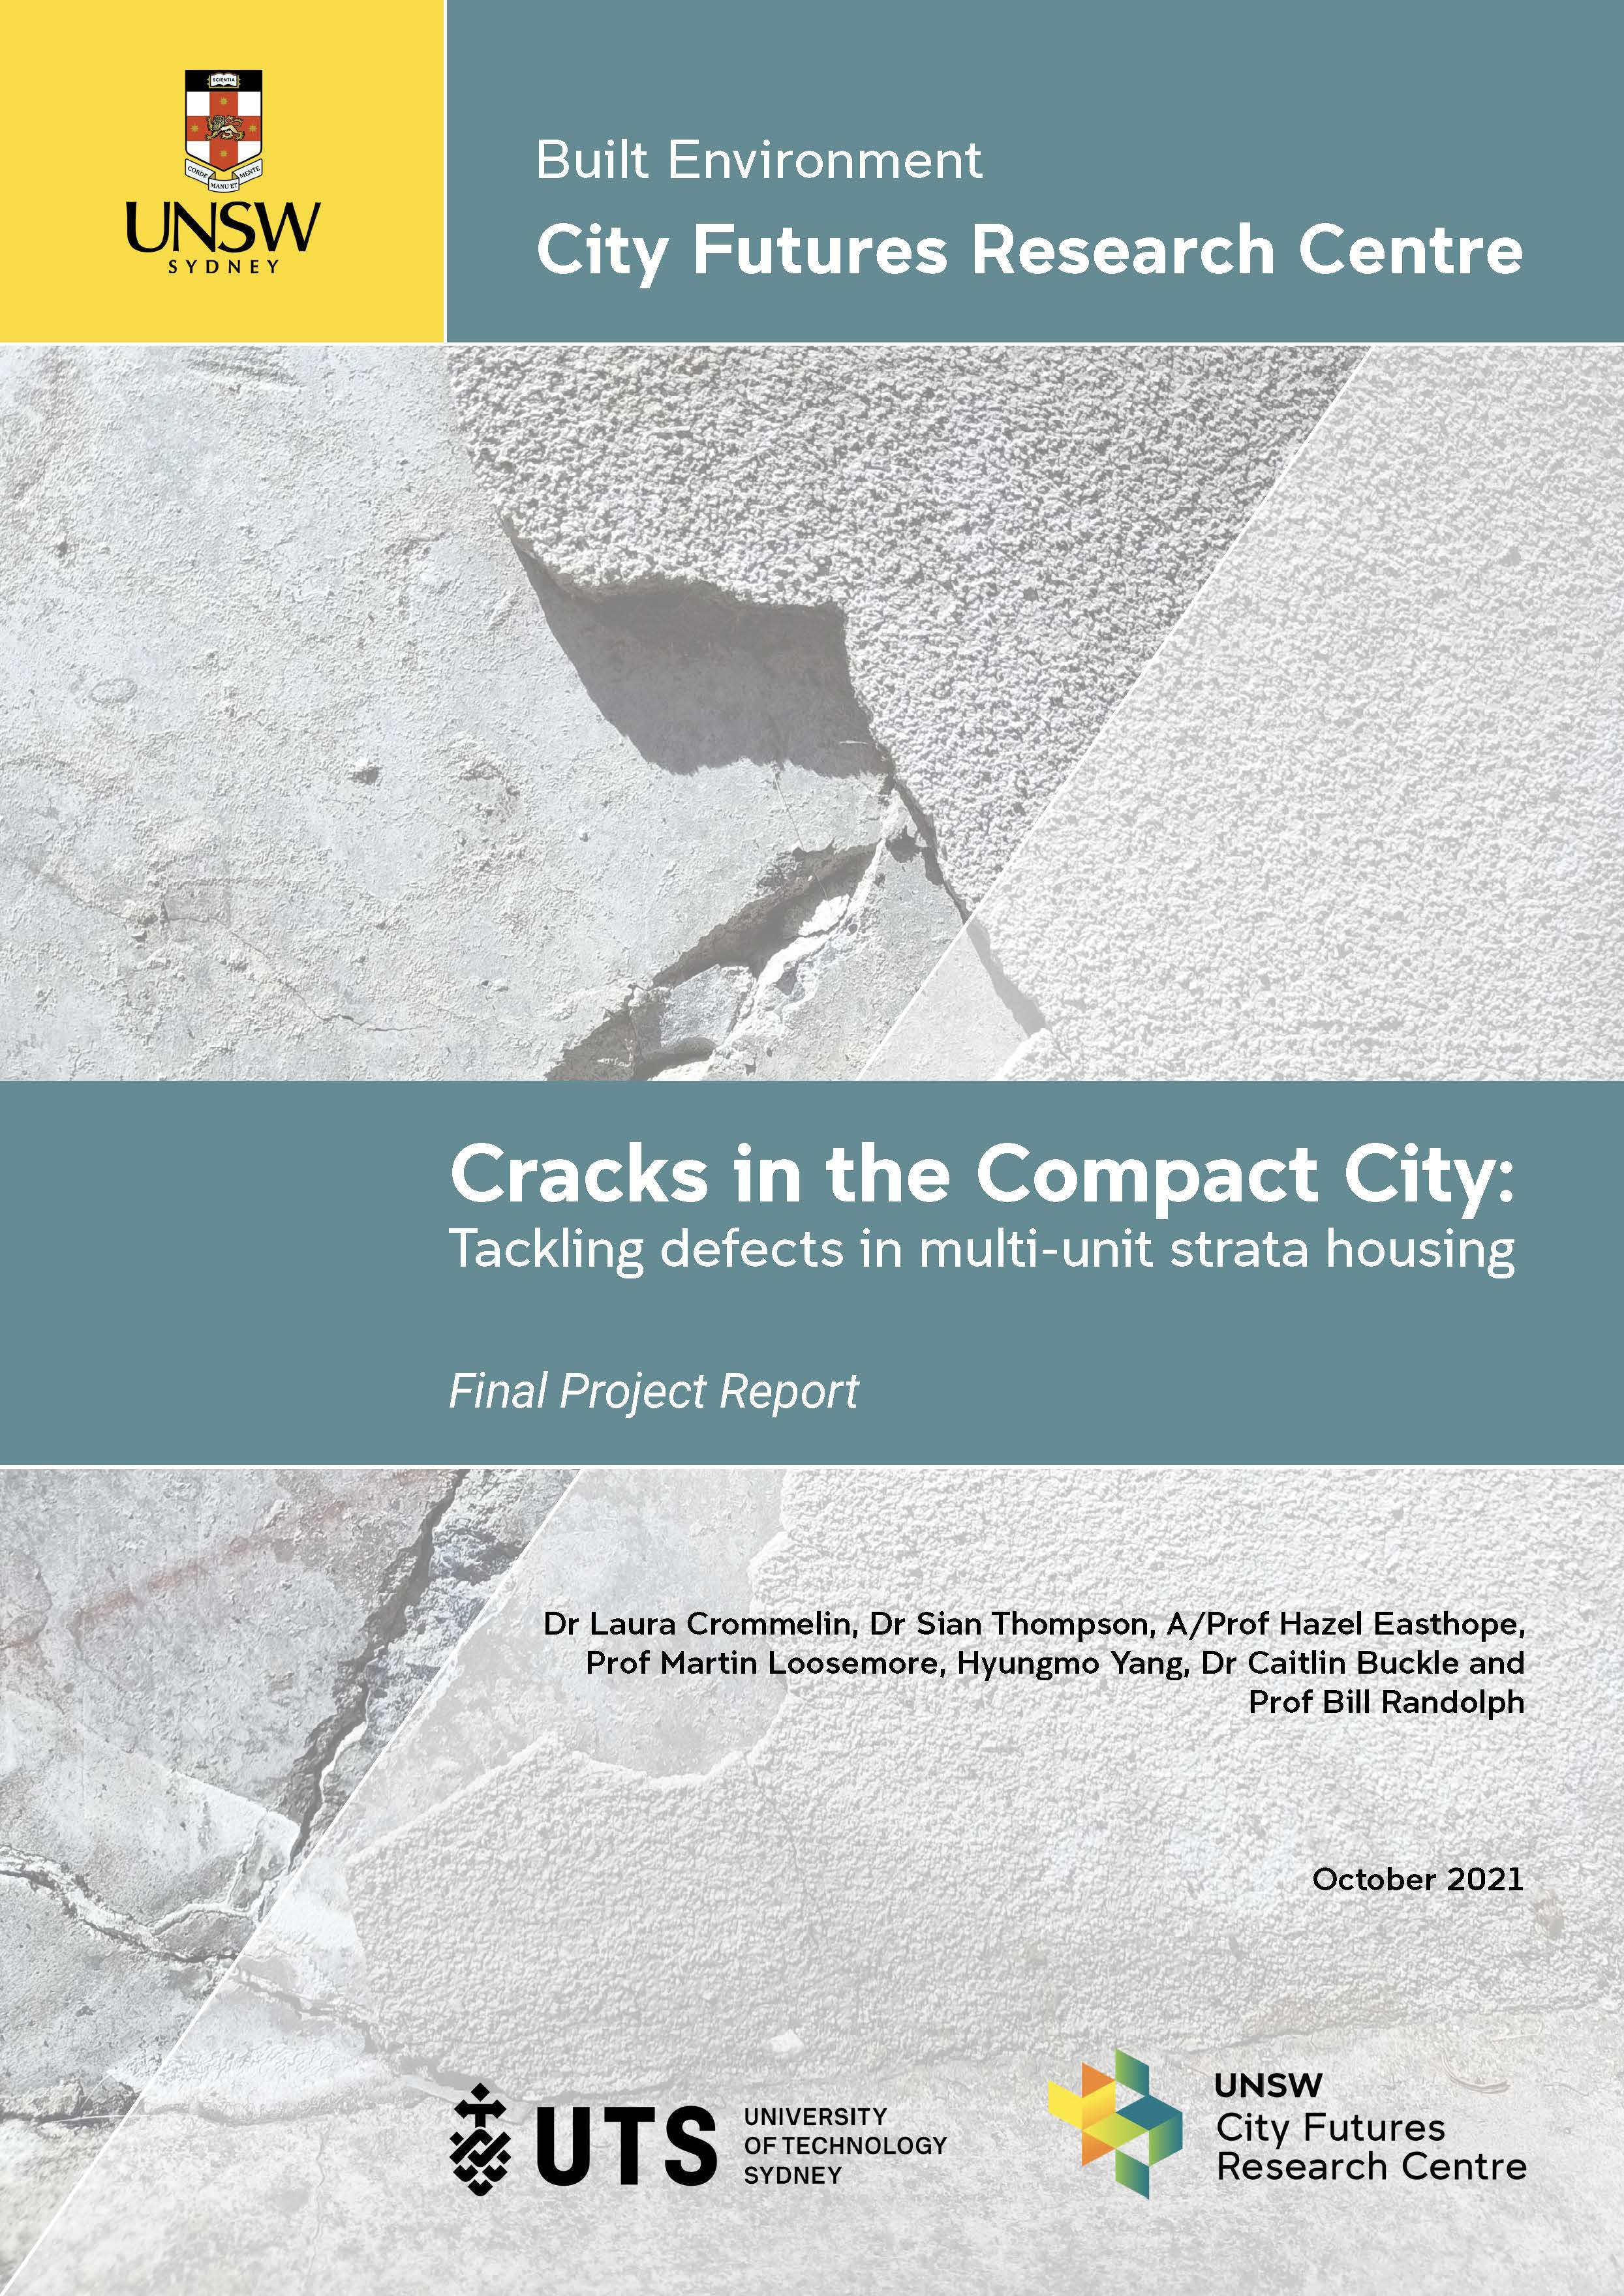 https://cityfutures.be.unsw.edu.au/media/images/Pages_from_Defects_final_report_for_publication.original.jpg